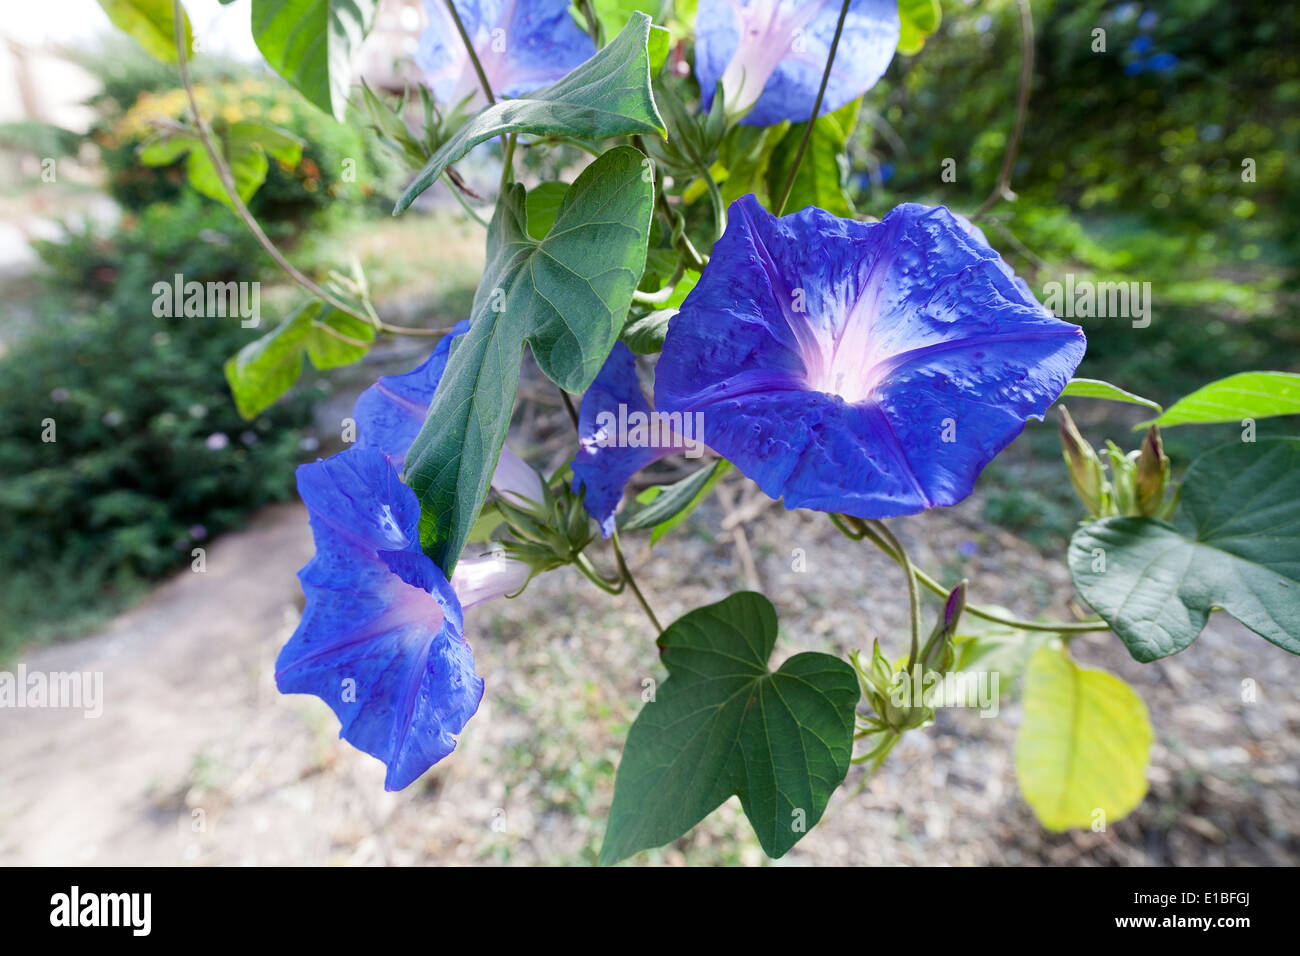 Close up of ivy morning glory with blue flowers stock photo close up of ivy morning glory with blue flowers izmirmasajfo Choice Image